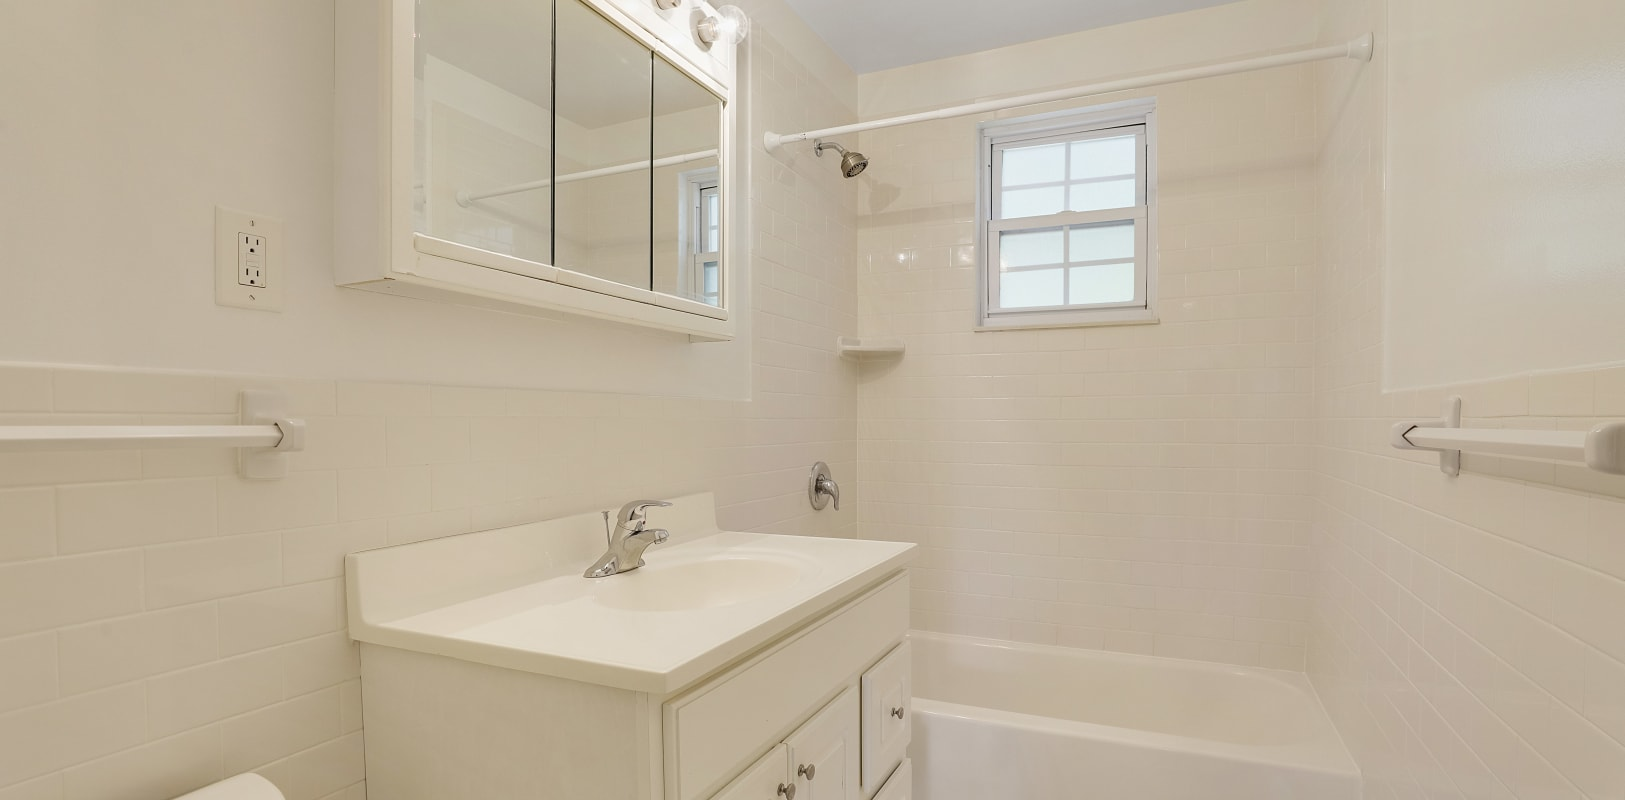 Bathroom with white cabinets and window next to shower for outdoor views at Parkway East Apartments in Caldwell, New Jersey